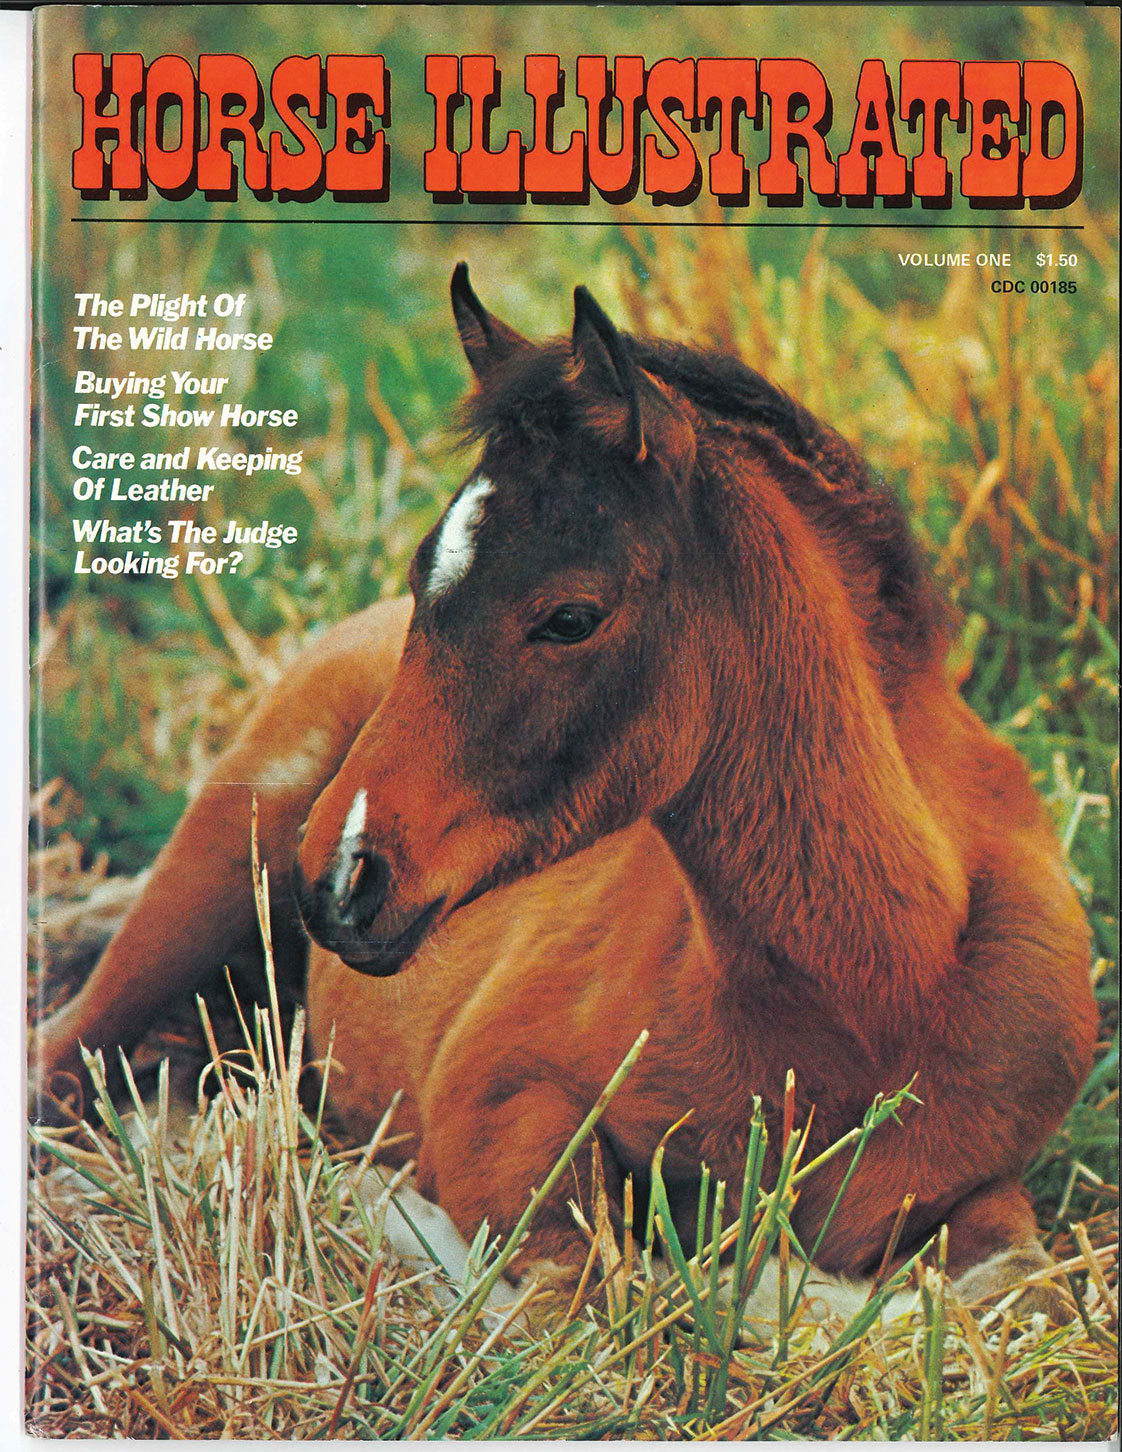 Horse Illustrated first issue